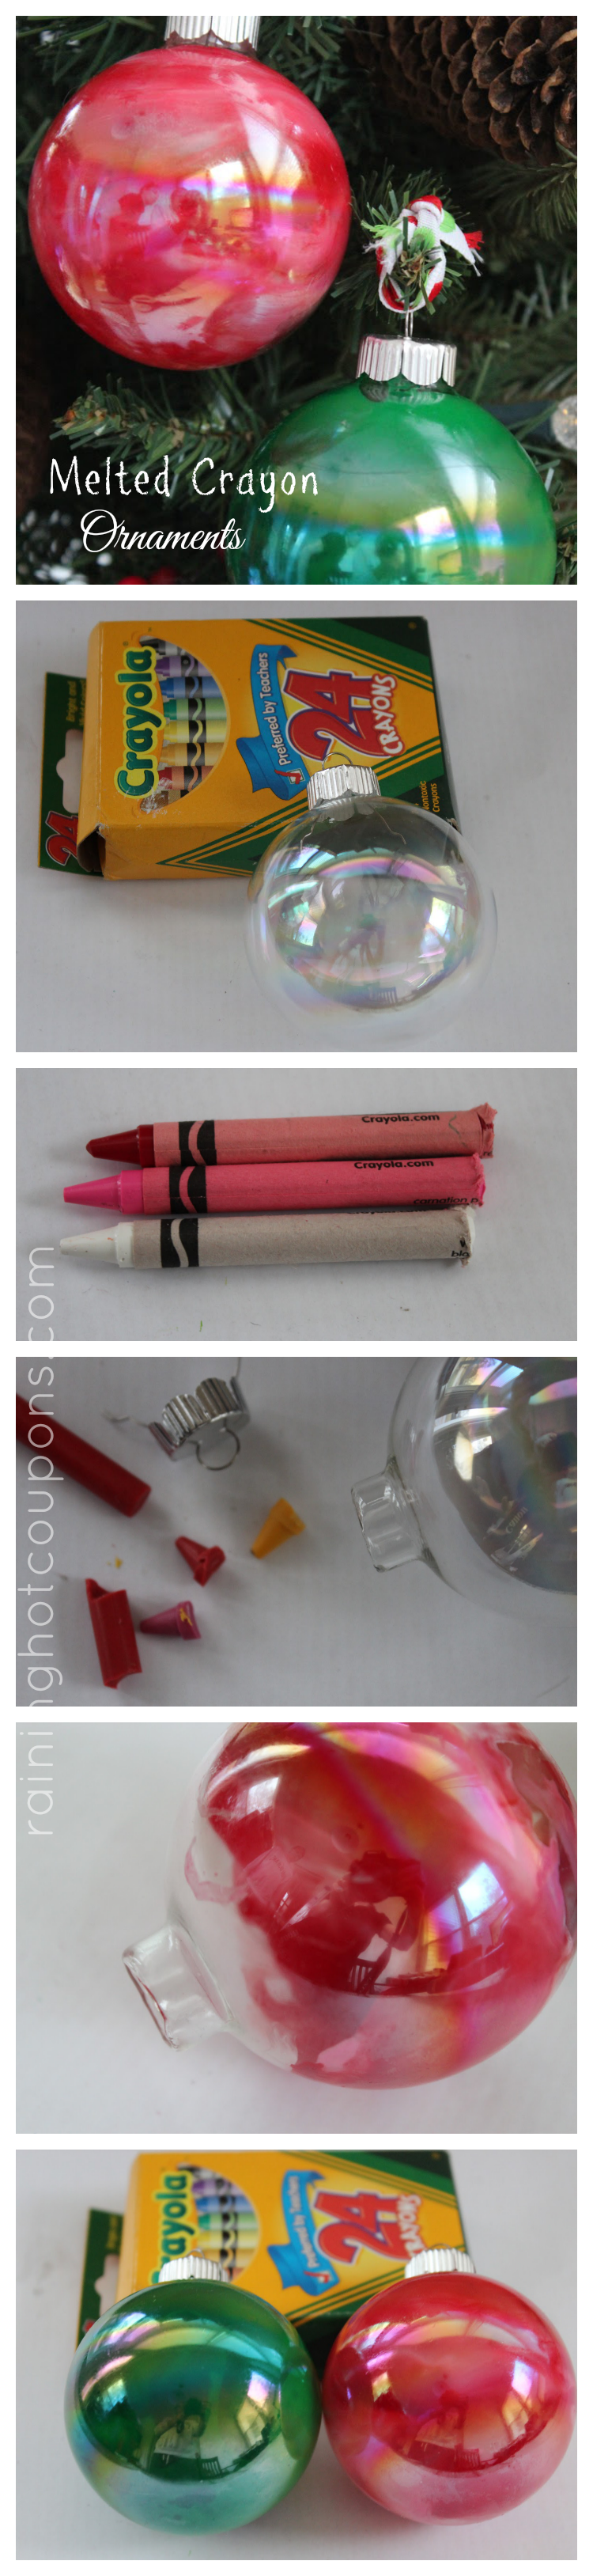 melted crayons collage